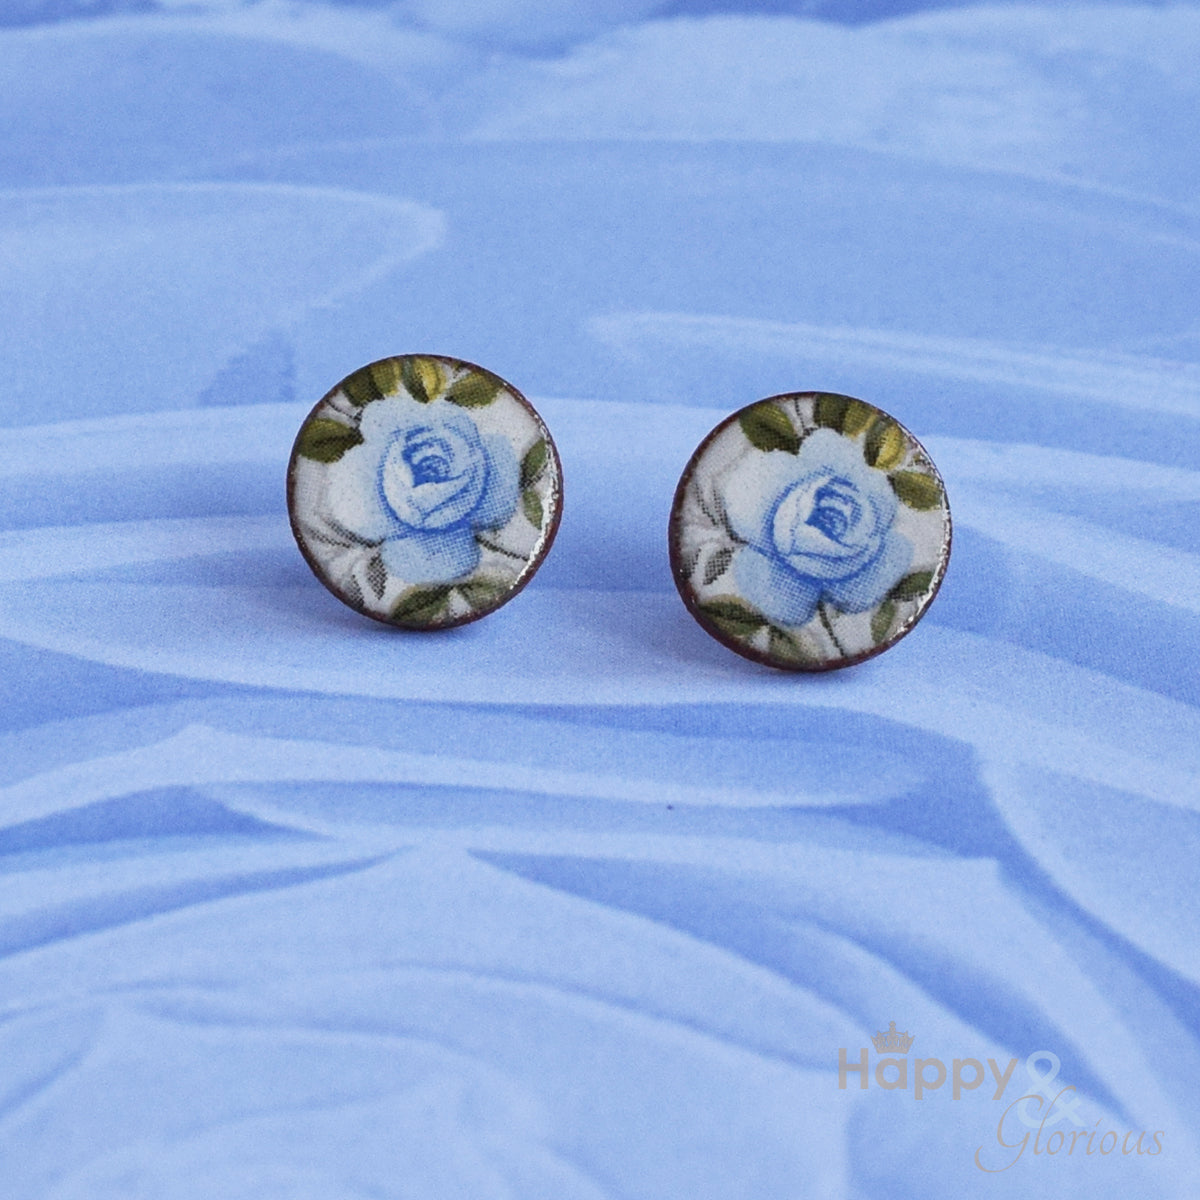 Blue rose ceramic stud earrings by Stockwell Ceramics